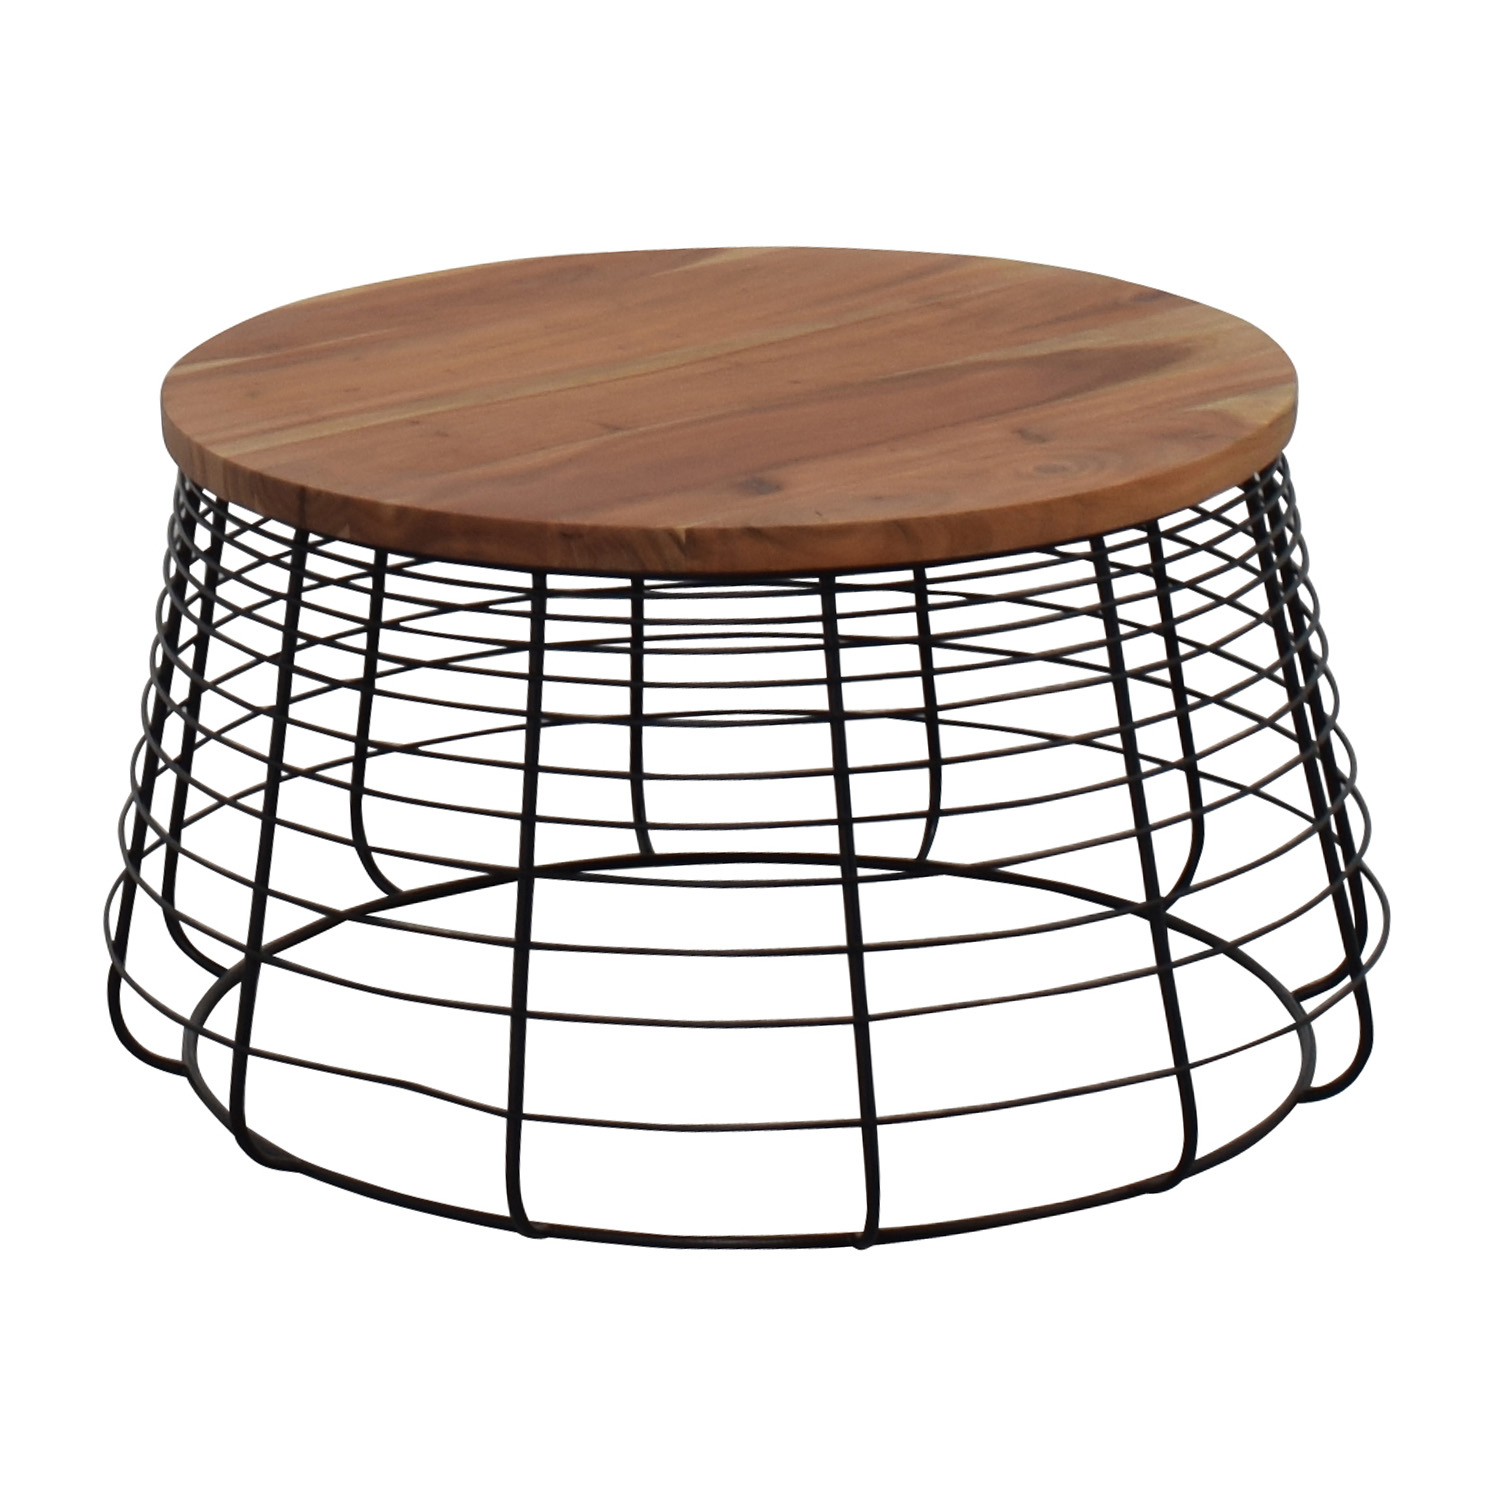 CB2 CB2 Round Wire Coffee Table On Sale